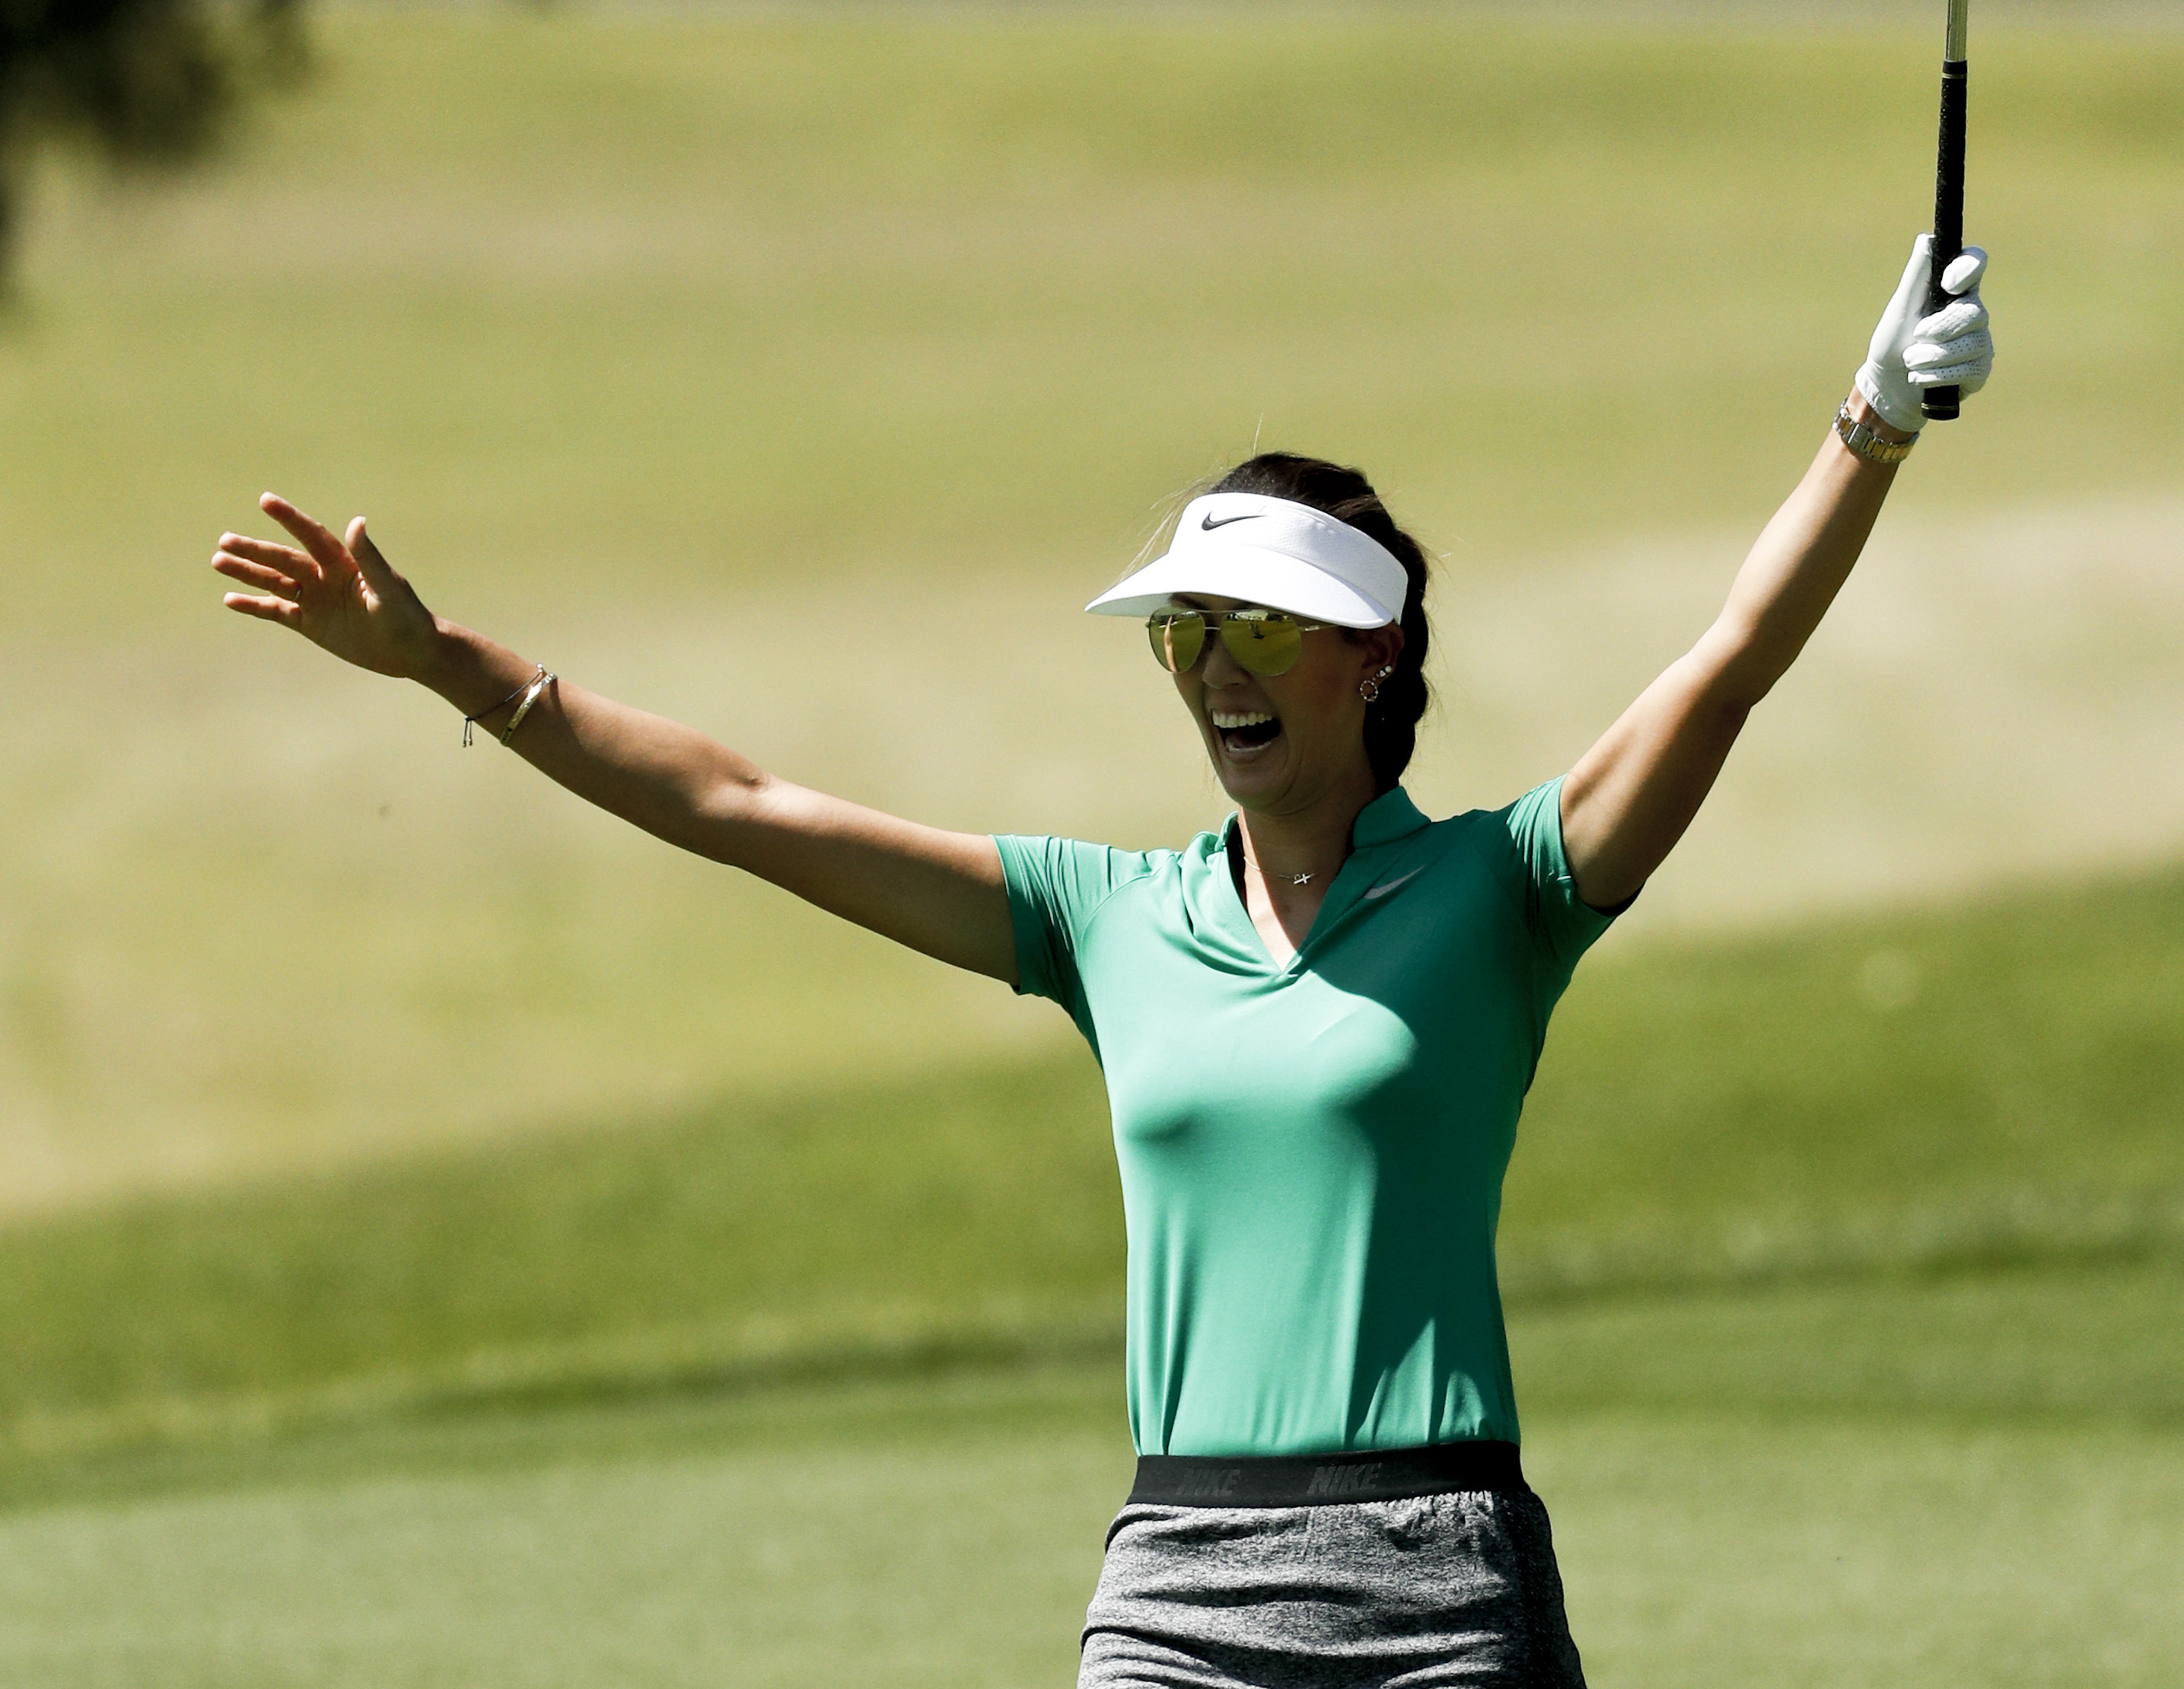 Michelle Wie celebrates after making an eagle from the fairway on the 12th hole during the second round of the LPGA Tour ANA Inspiration golf tournament at Mission Hills Country Club, Friday, April 1, 2016, in Rancho Mirage, Calif. (AP Photo/Chris